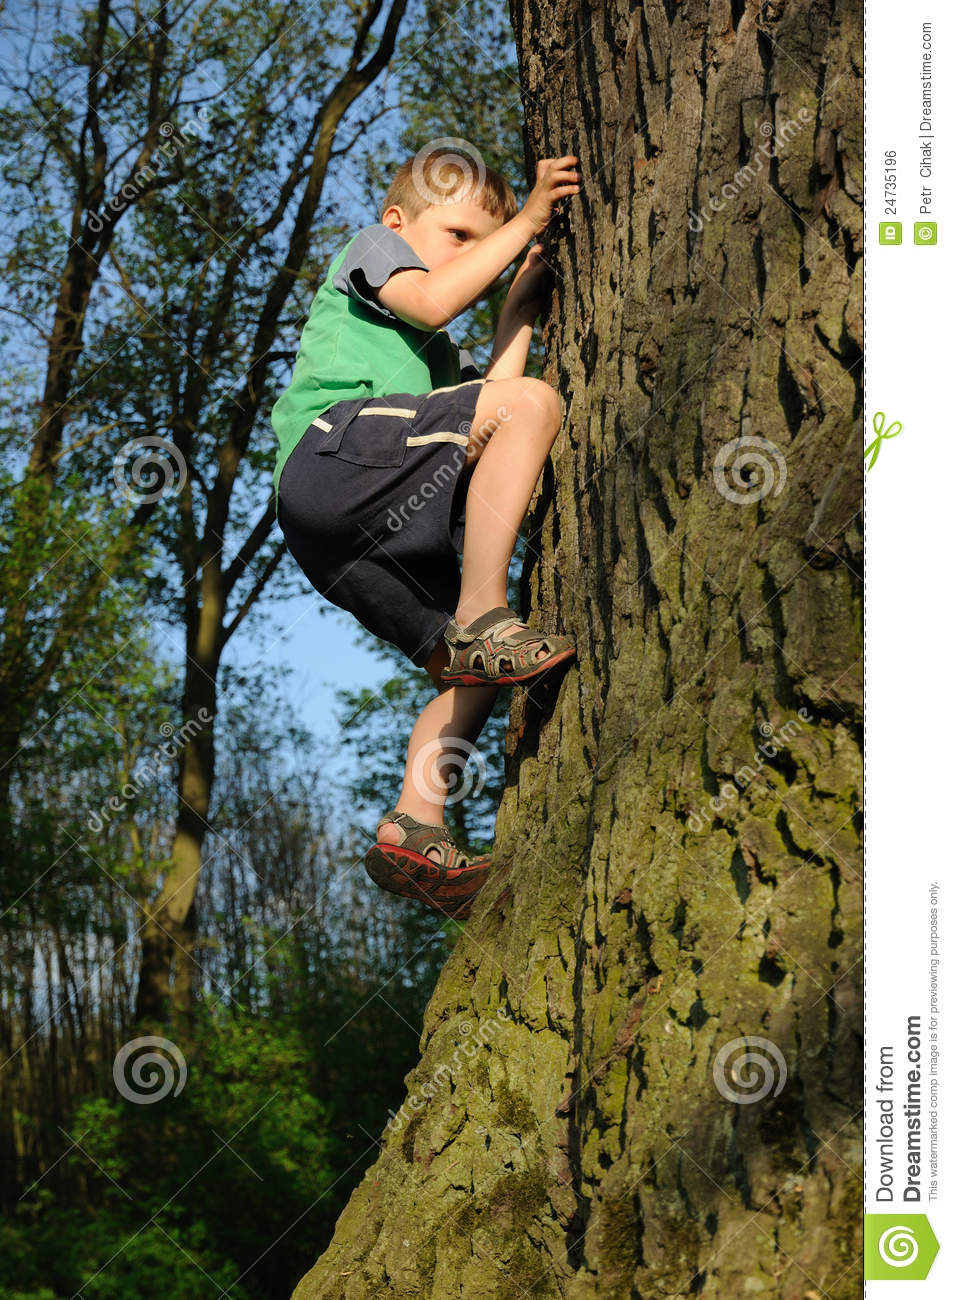 Young Boy Climbing Tree Stock Photo Image Of Preschooler